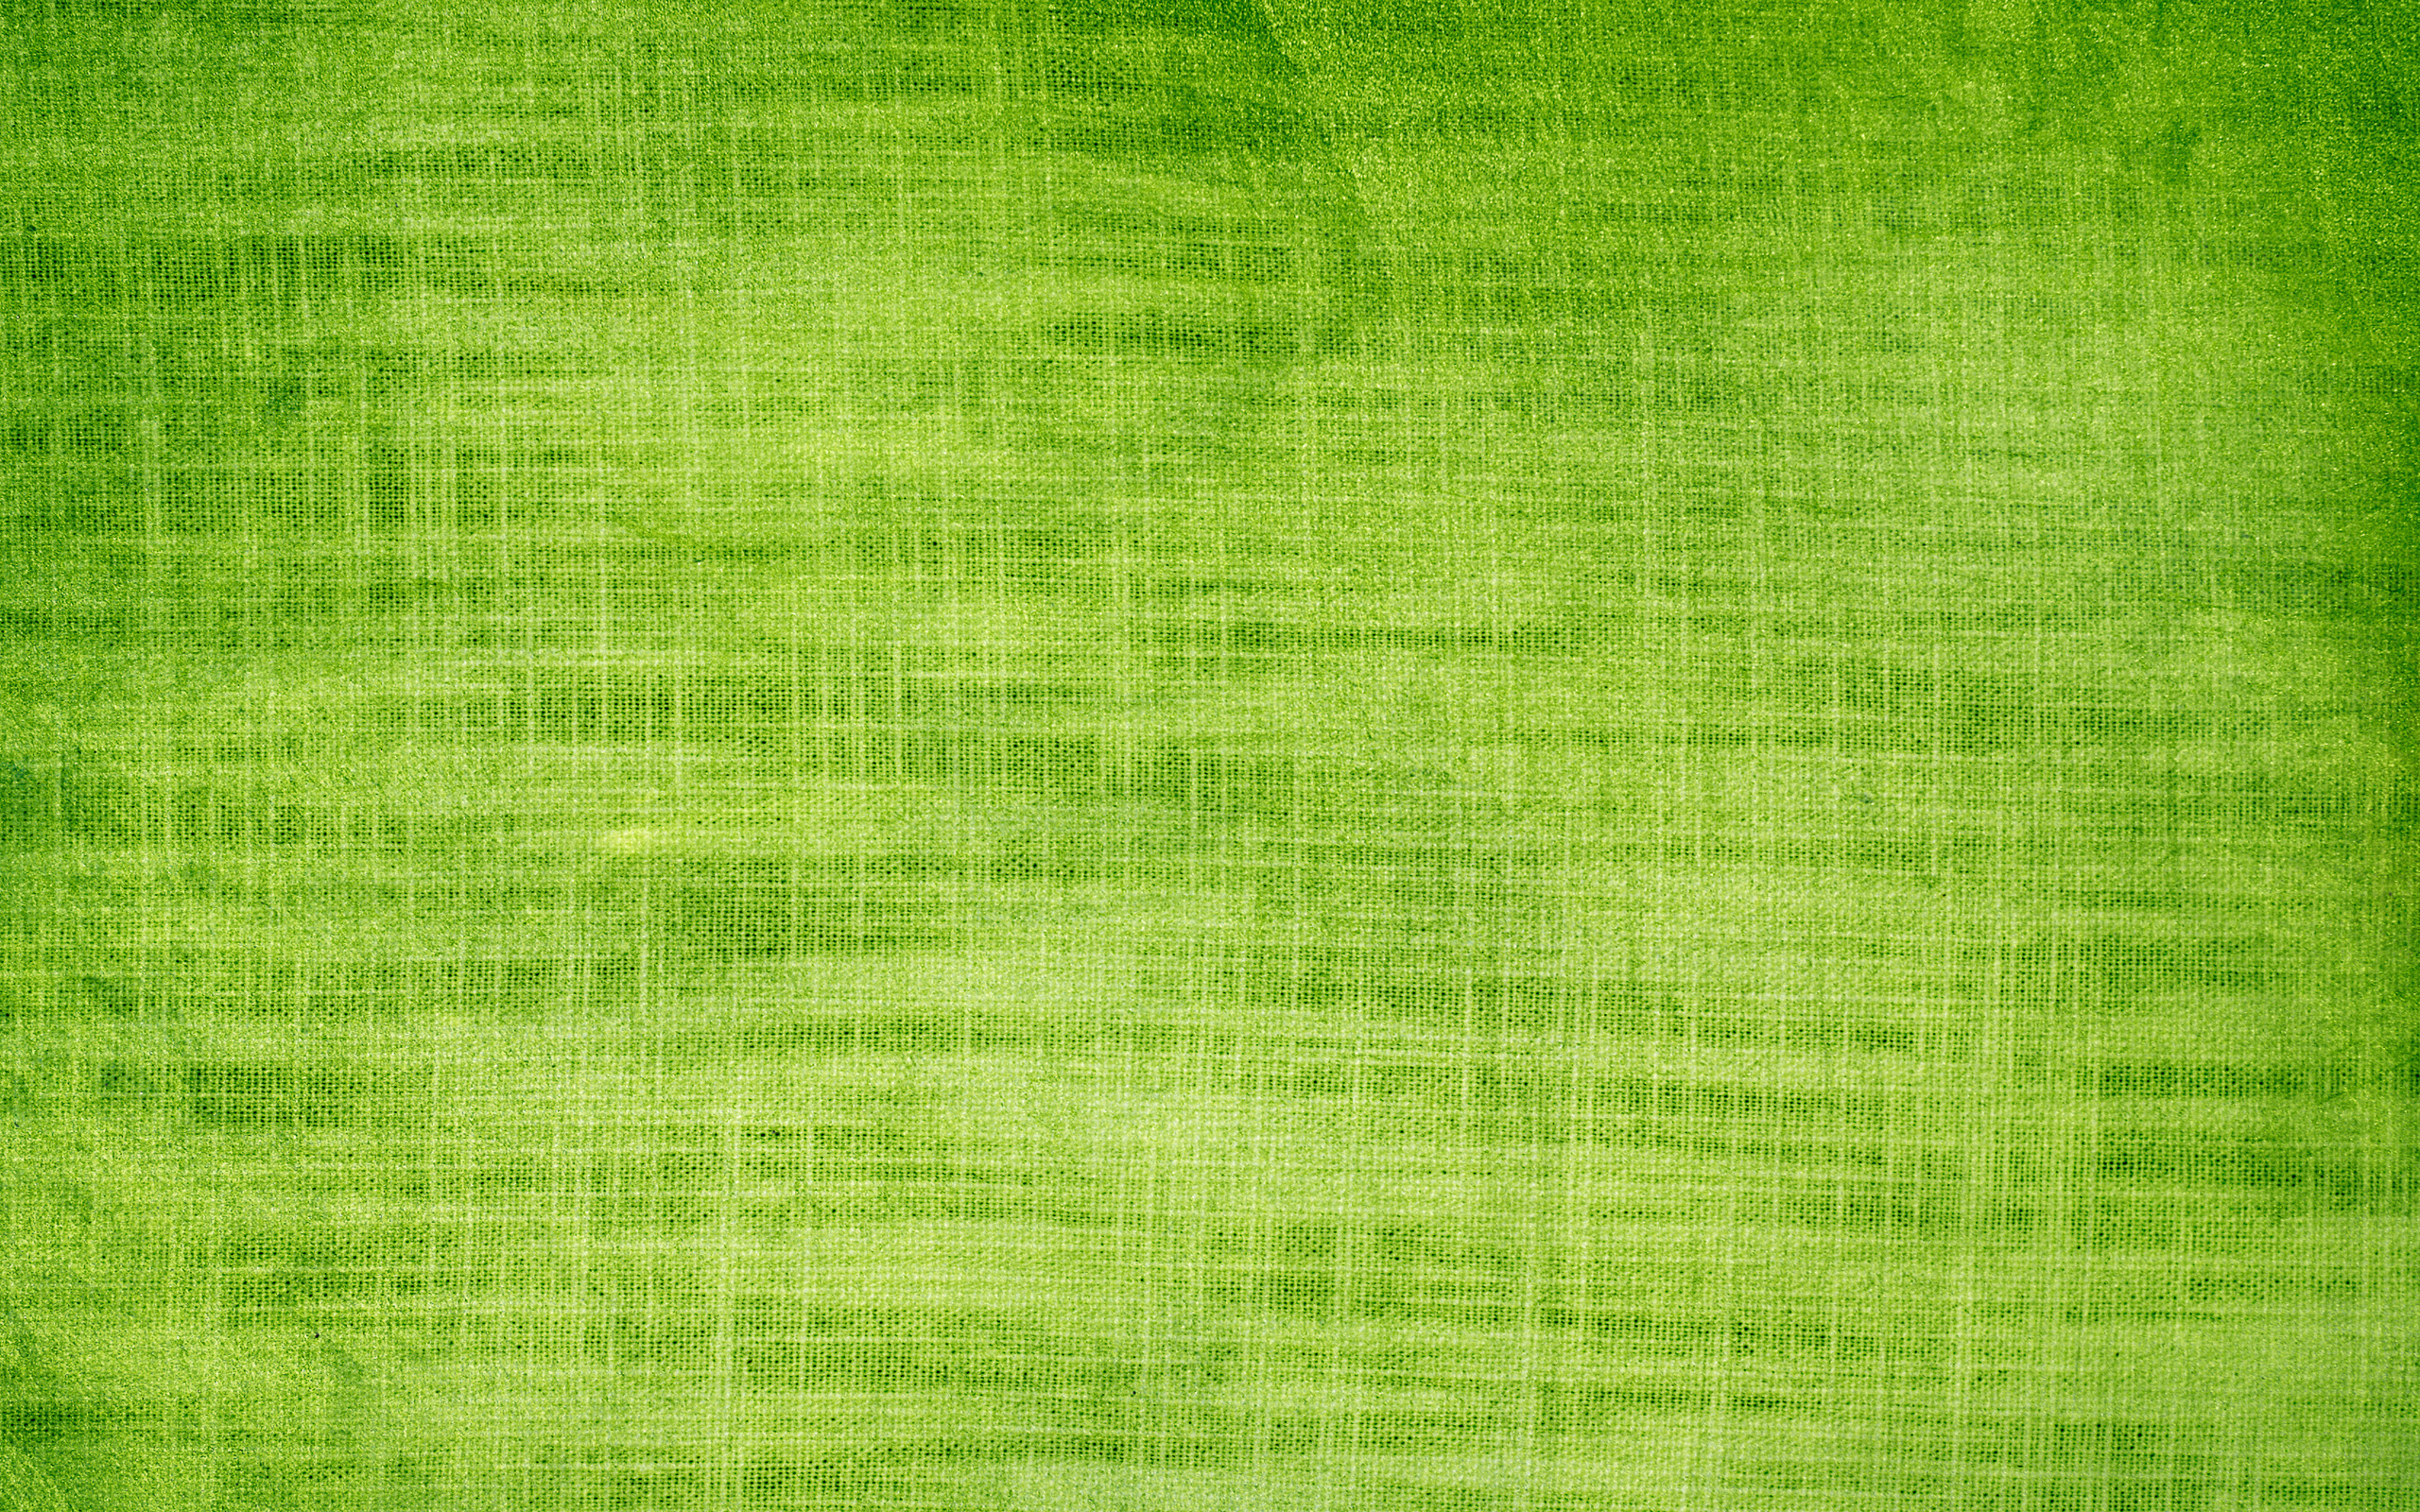 Lime Green Textured Wallpaper